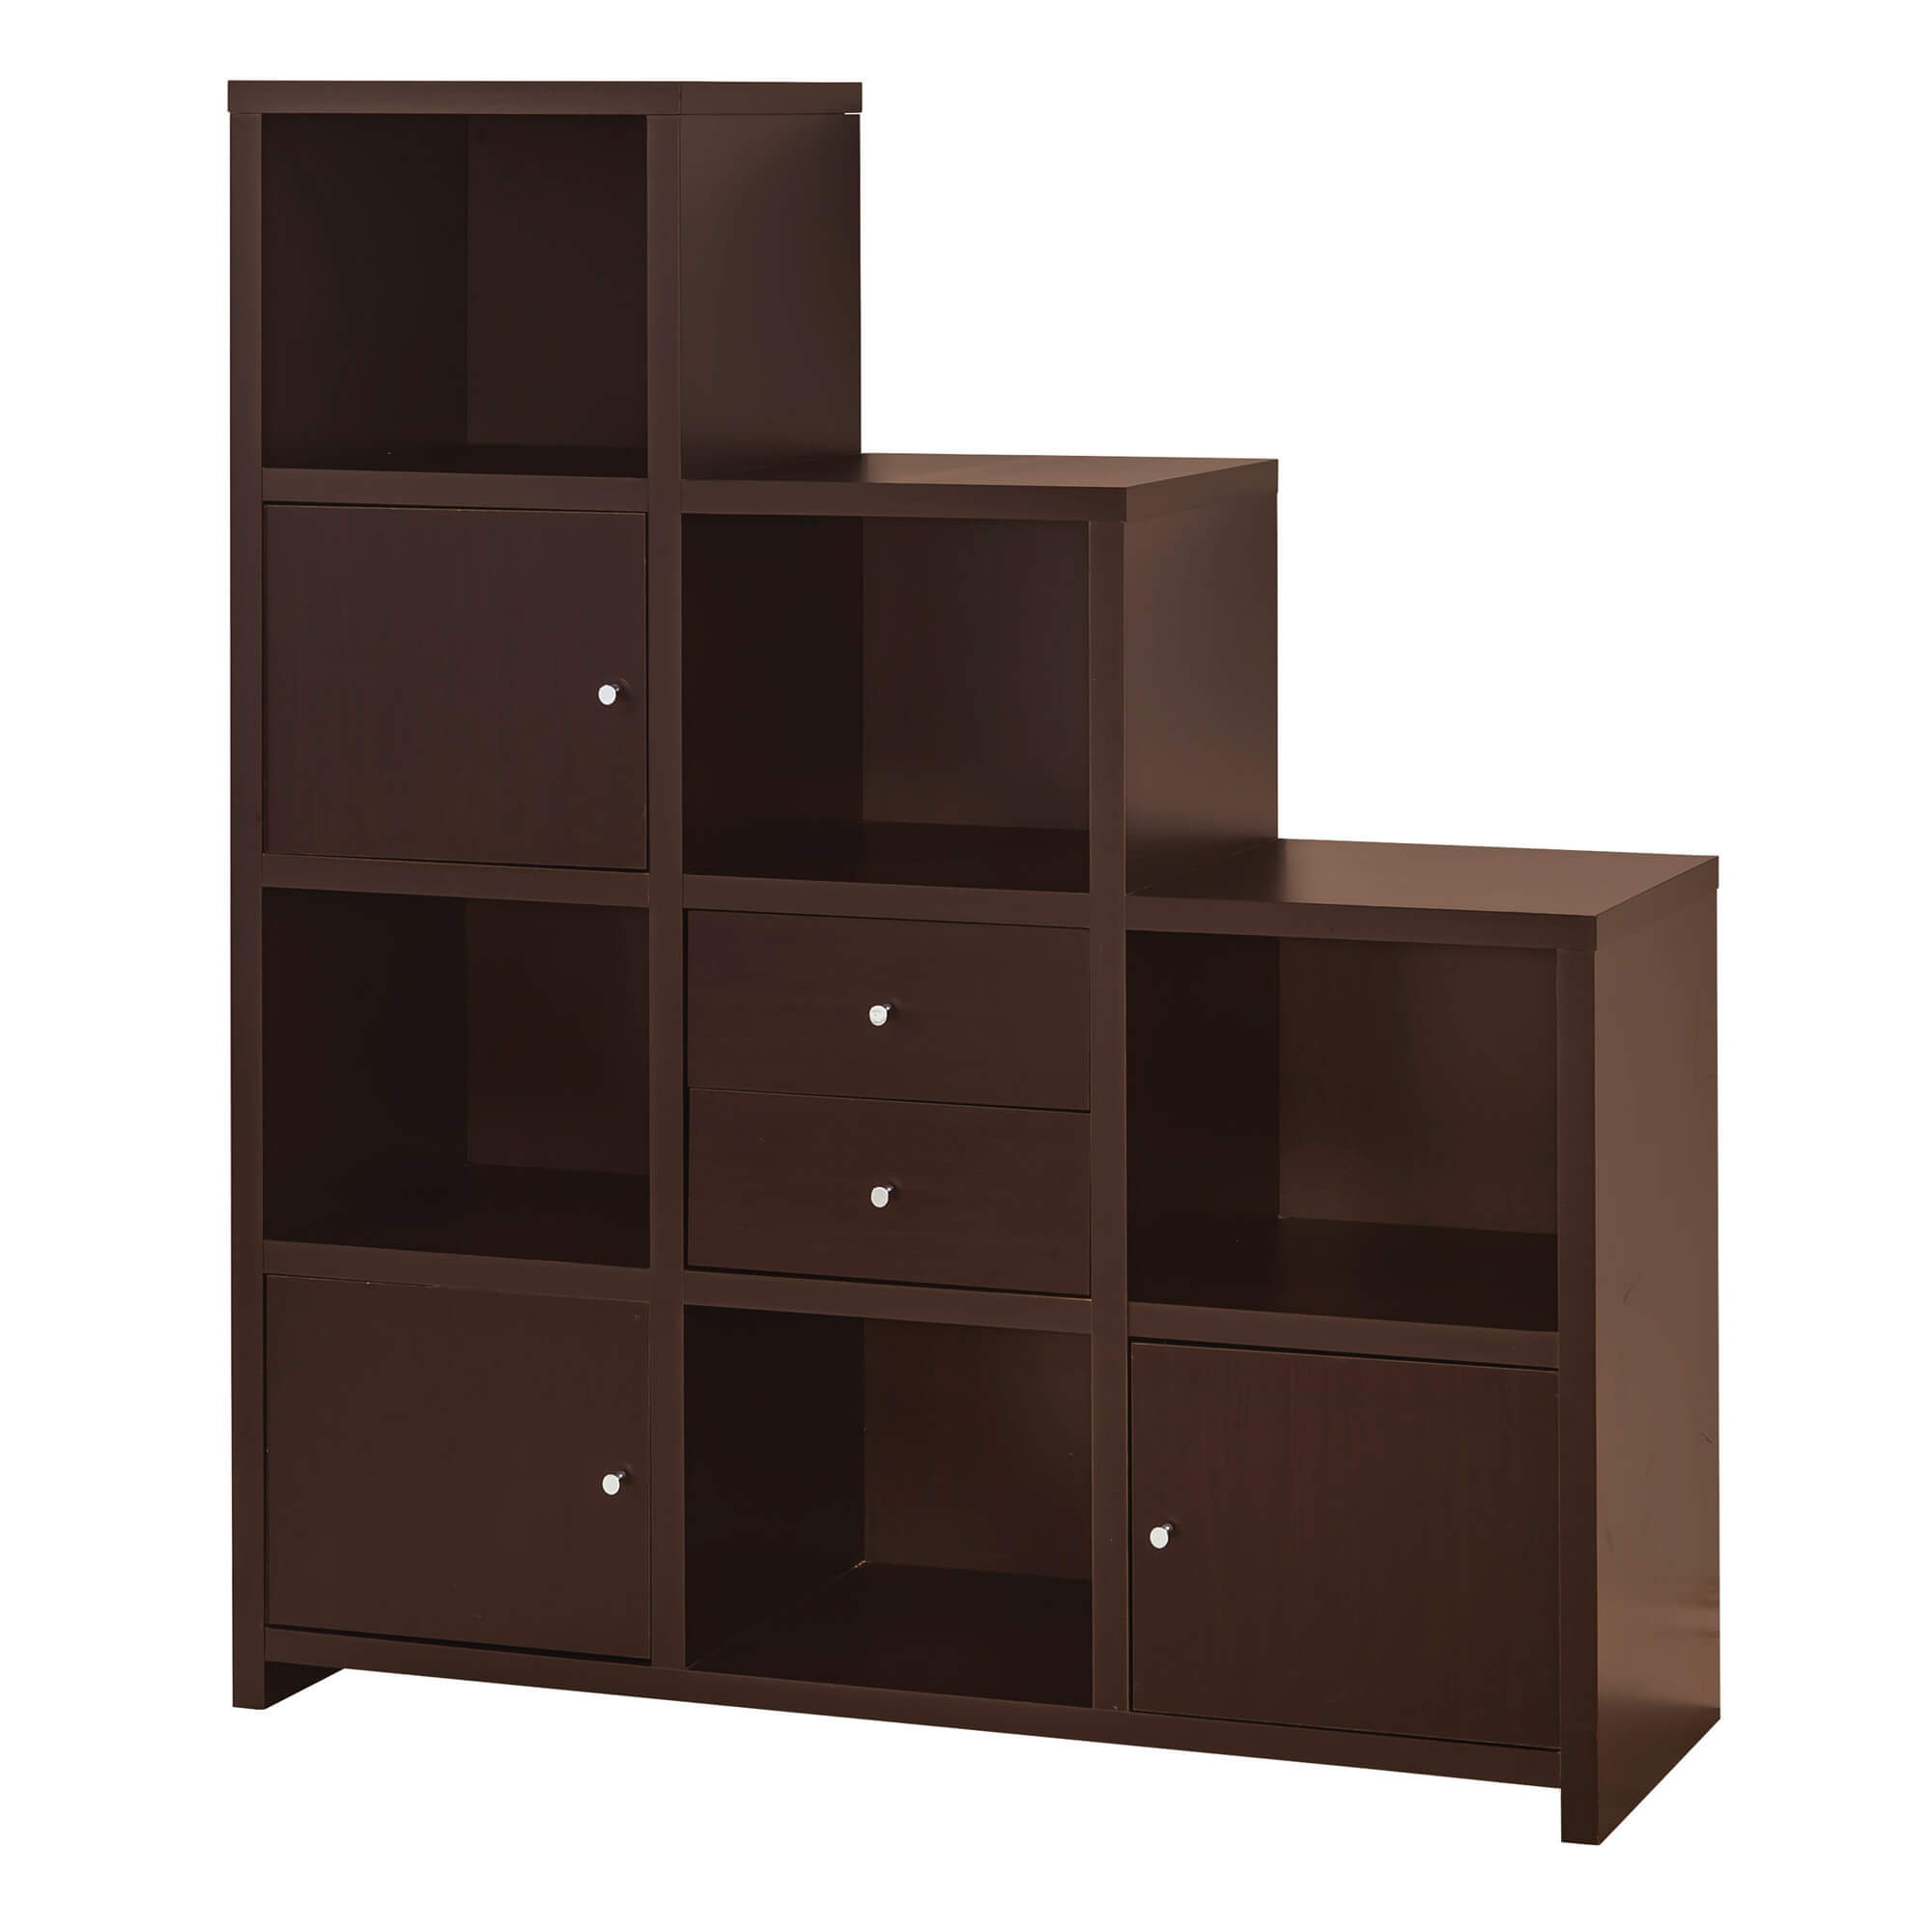 """Here's a dark brown staircase style cube shelving unit. Additional feature includes small doors on some of the cube sections in a checkered pattern. The """"staircase"""" style configuration leaves space above a portion of the shelving unit in which you can place photographs, prints or other art."""